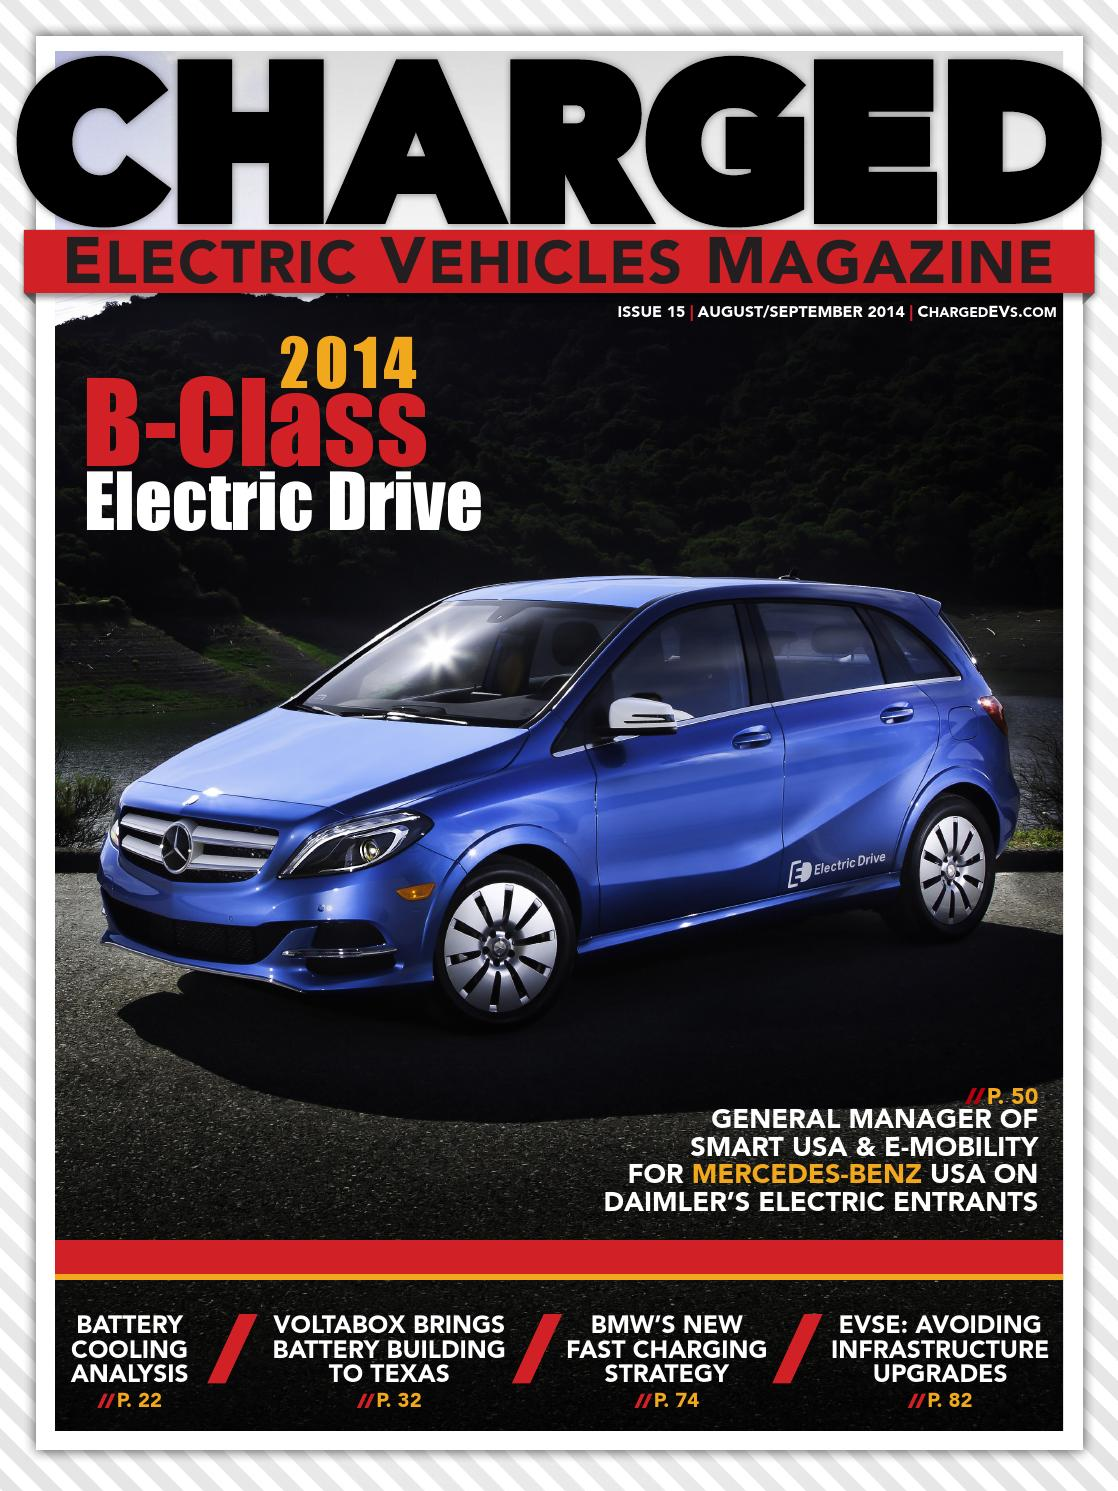 Charged Electric Vehicles Magazine Iss 15 Aug Sep 2014 By 12v Battery Charger Circuit Diagram Additionally J1772 Car Vehilces Issuu